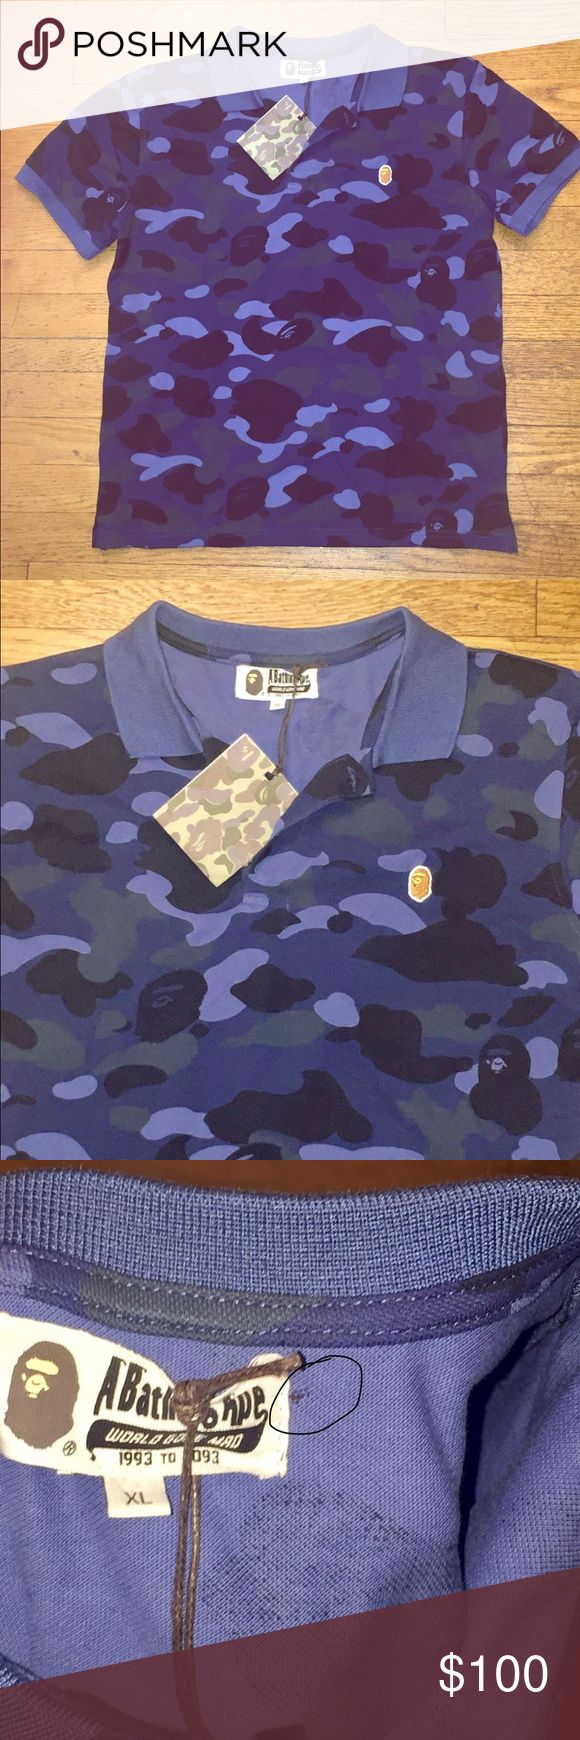 "Bape A Bathing Ape Blue Polo Camo Camouflage Tags Up for sale is this classic Bape polo shirt in XL.  This is an XL, and measures about 20.5"" from armpit to armpit, and 25"" from top to bottom.  It appears to run on the small side for a man.  Blue camo pattern with tag attached.  There is a small hall by the tag.  See last picture. Bape Tops Tees - Short Sleeve"